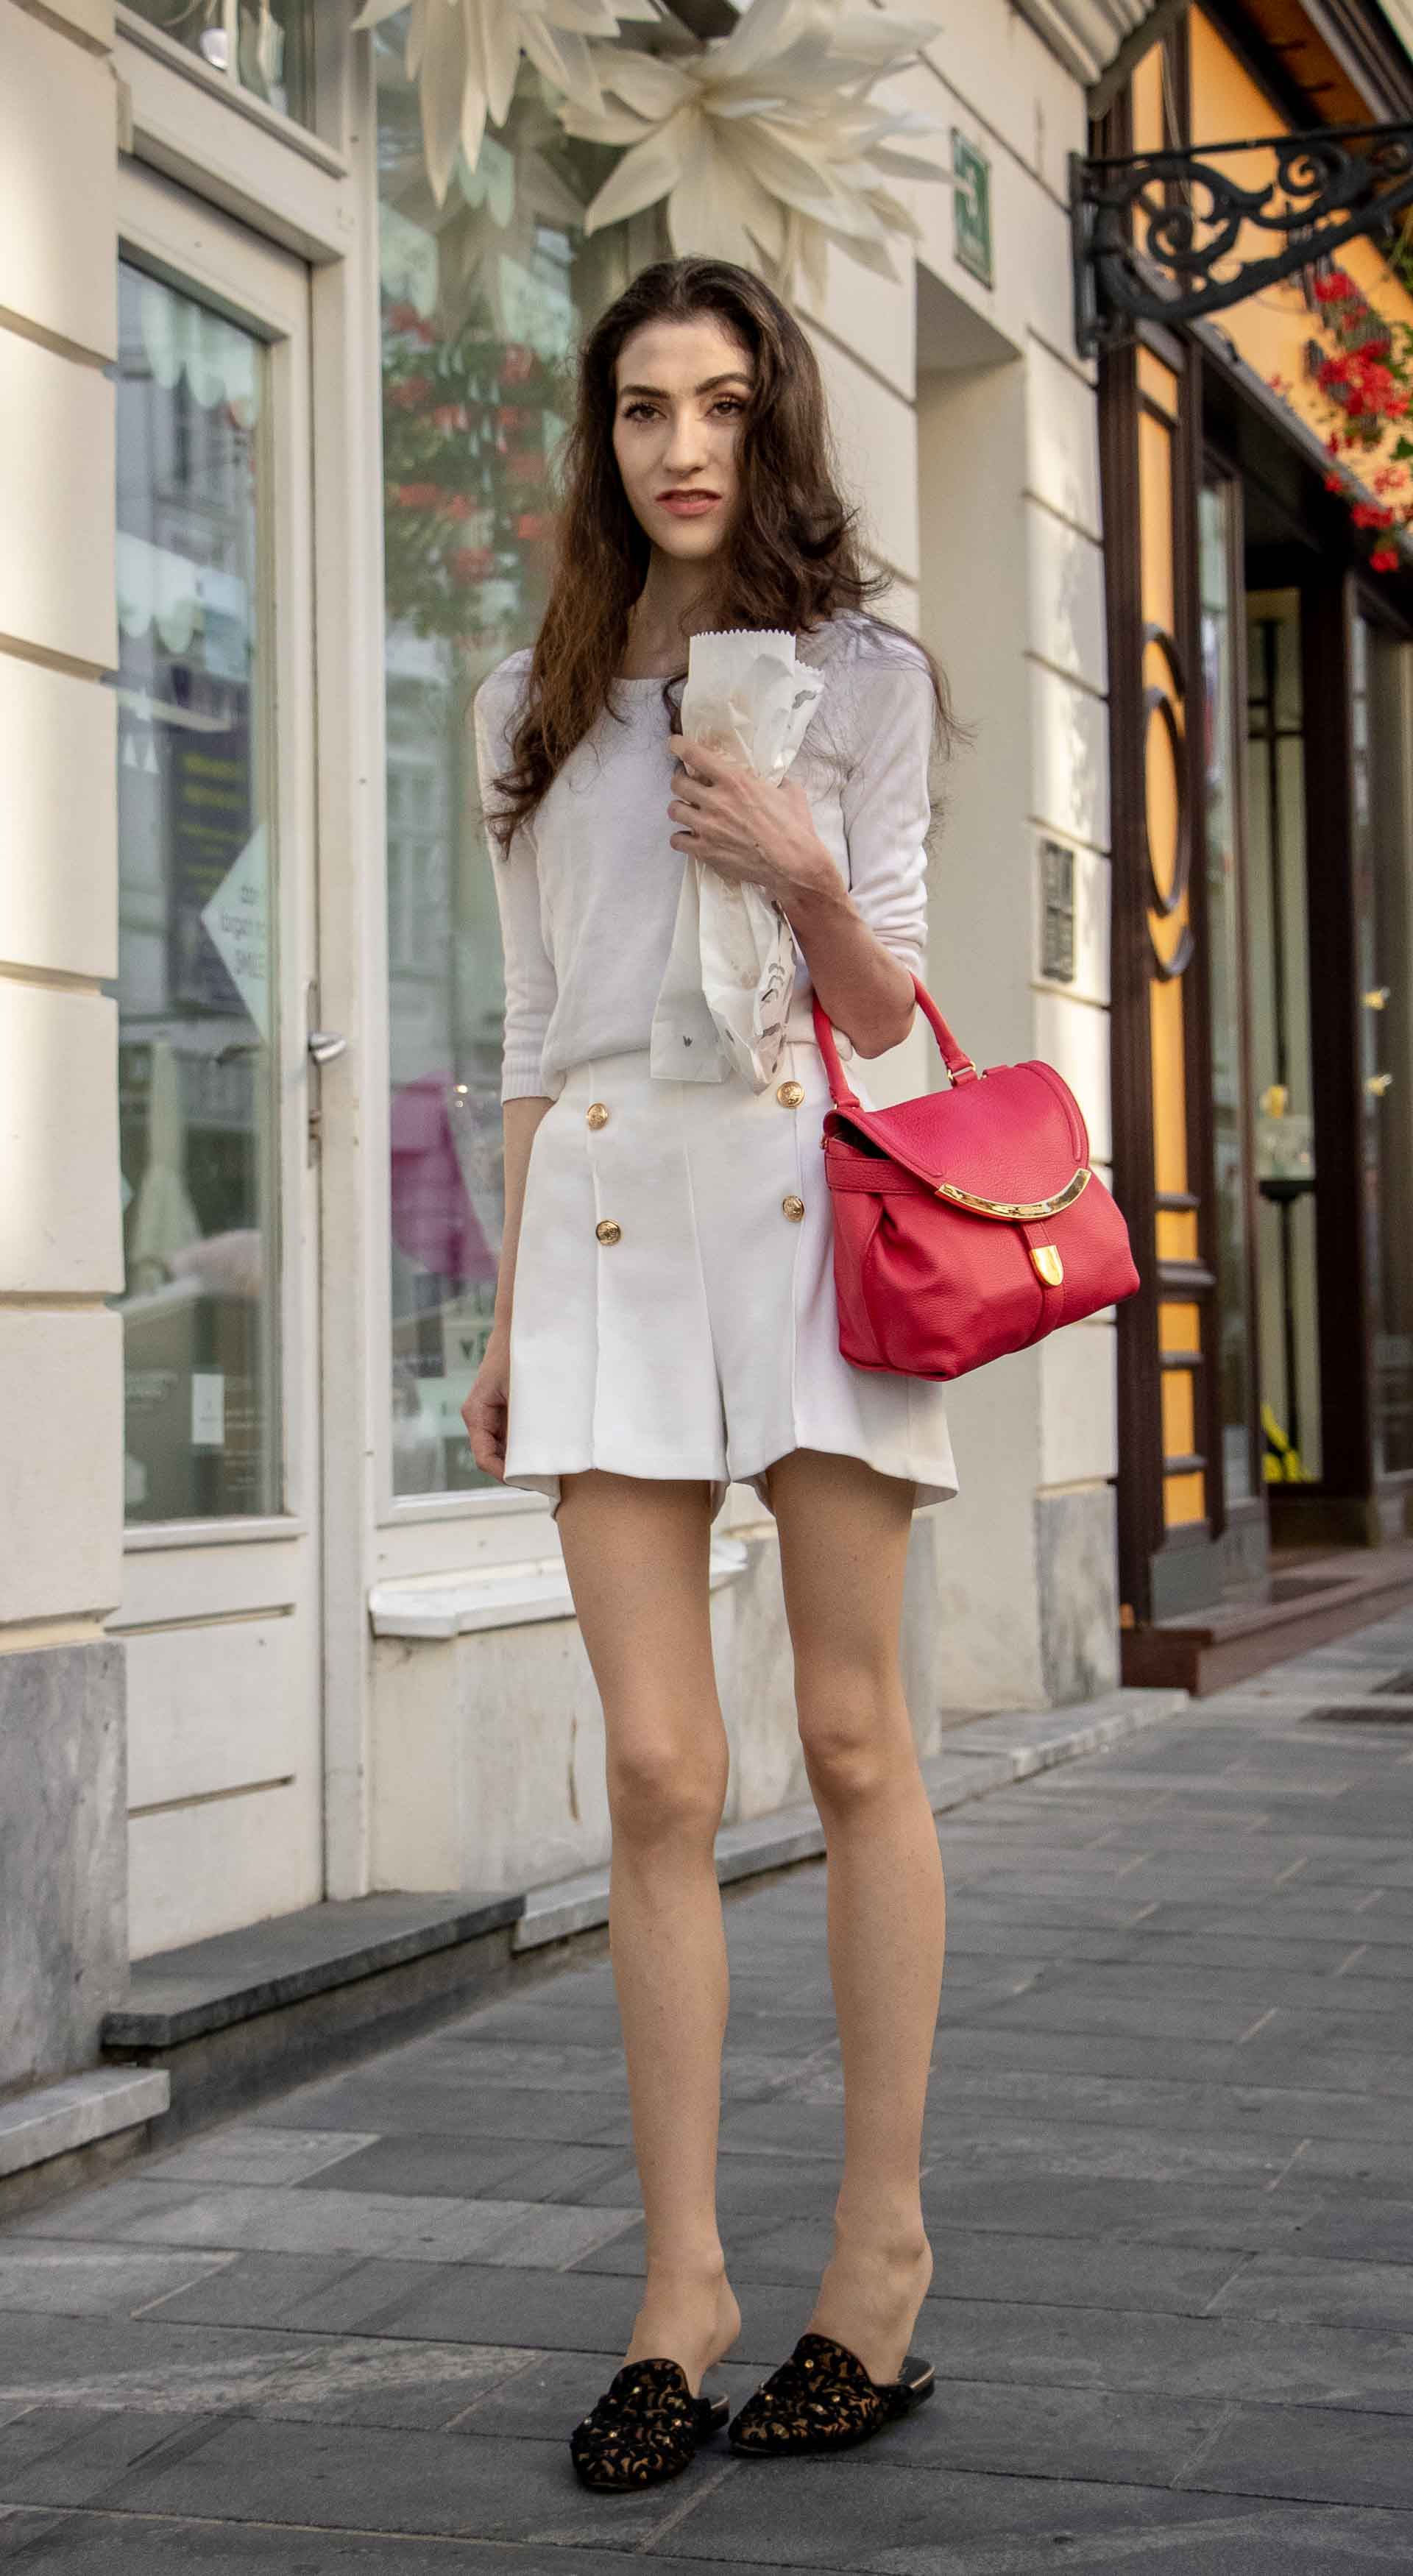 Beautiful Slovenian Fashion Blogger Veronika Lipar of Brunette from Wall dressed in all in white outfit, a white sweater, white tailored shorts, black flat slipper mules, pink top handle bag, a paper bag during heat wave in Ljubljana